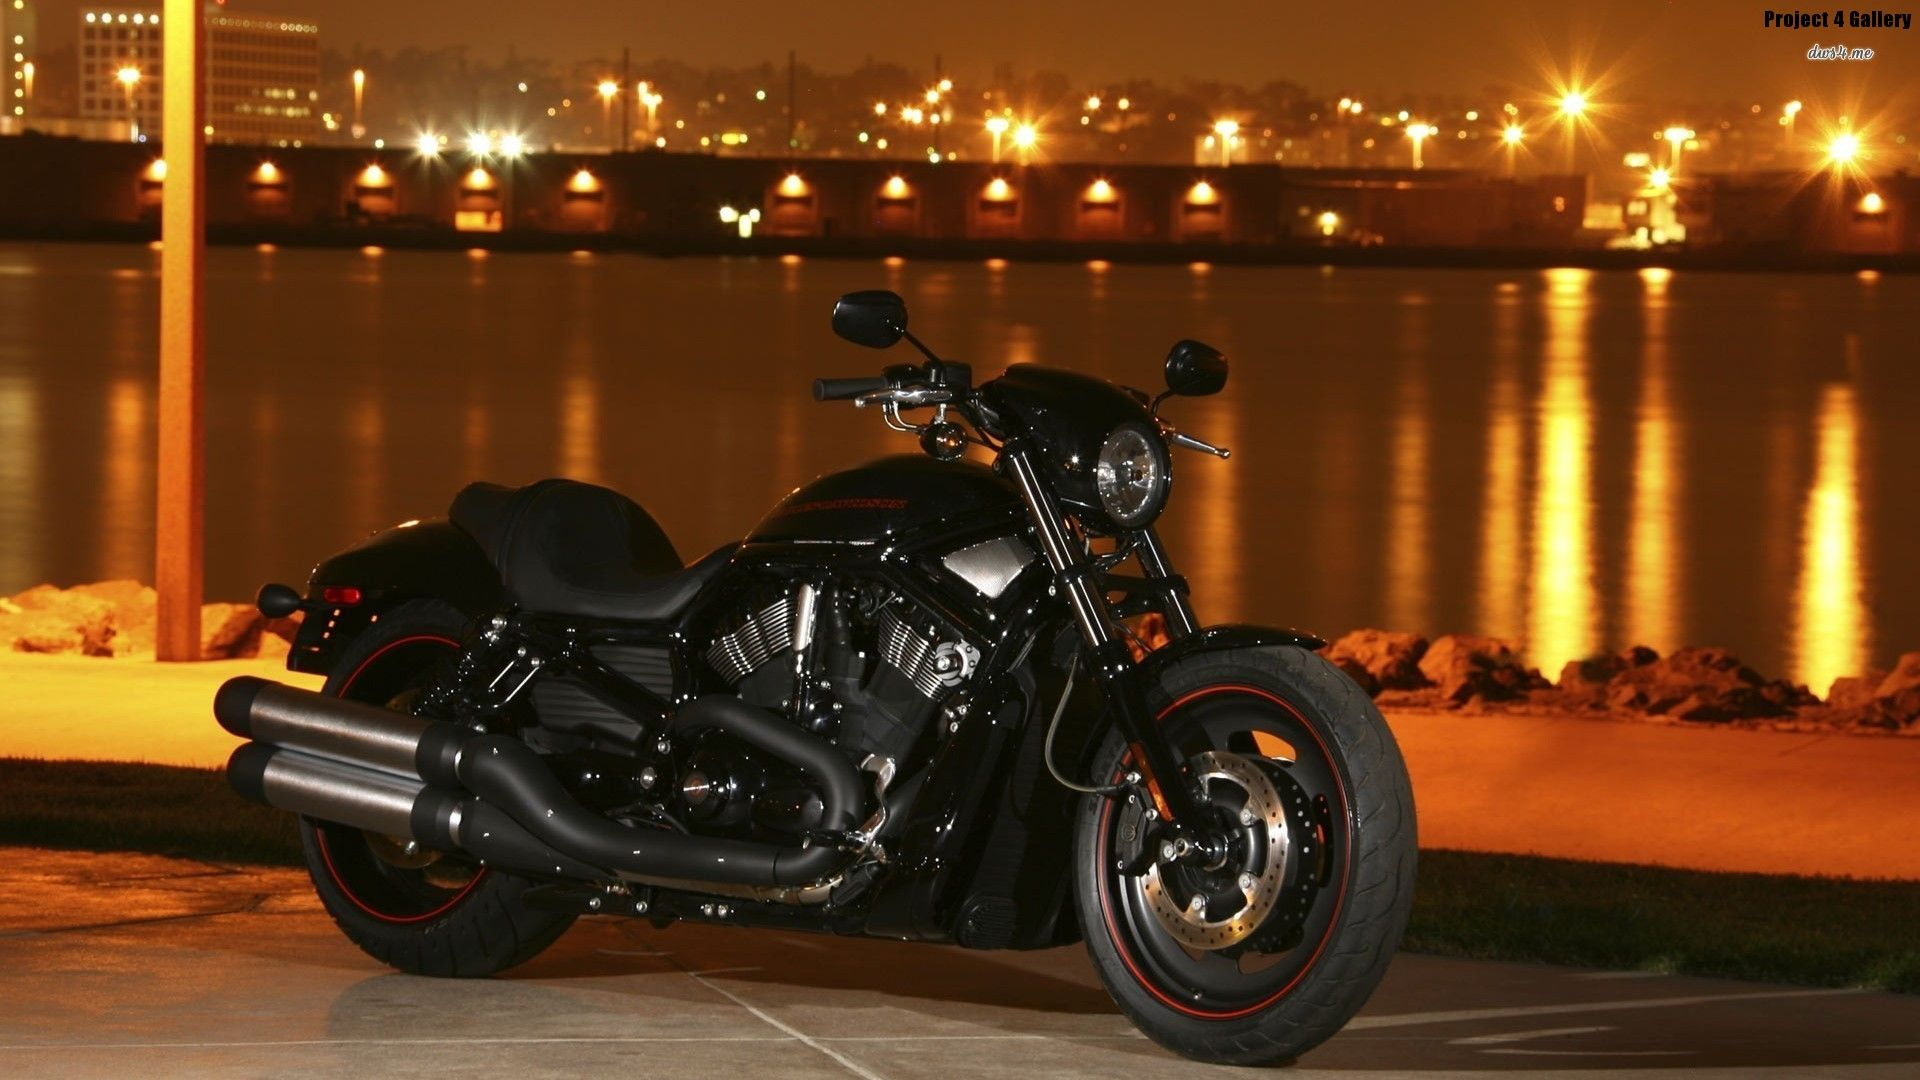 Harley Davidson Motorcycles Hd Wallpapers Free Wallaper Downloads 1920 1080 H Harley Davidson Pictures Harley Davidson Night Train Harley Davidson Motorcycles